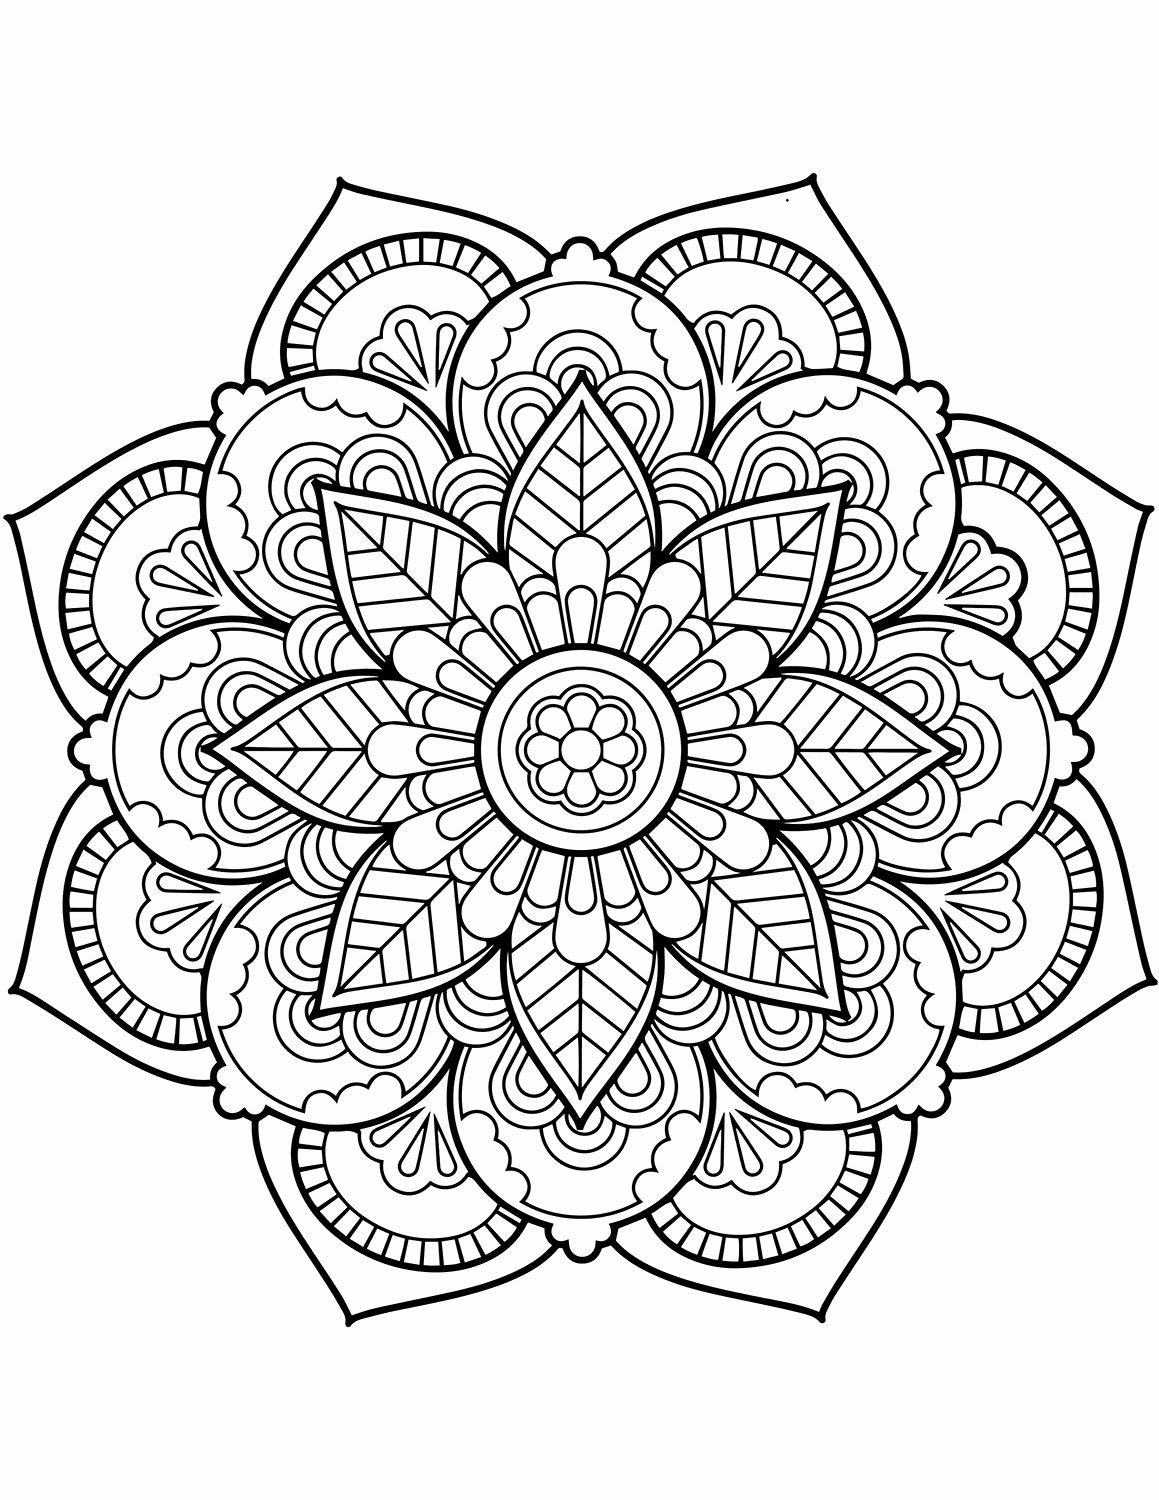 Coloring Book Flowers Printable Fresh Coloring Books Luxury Animal